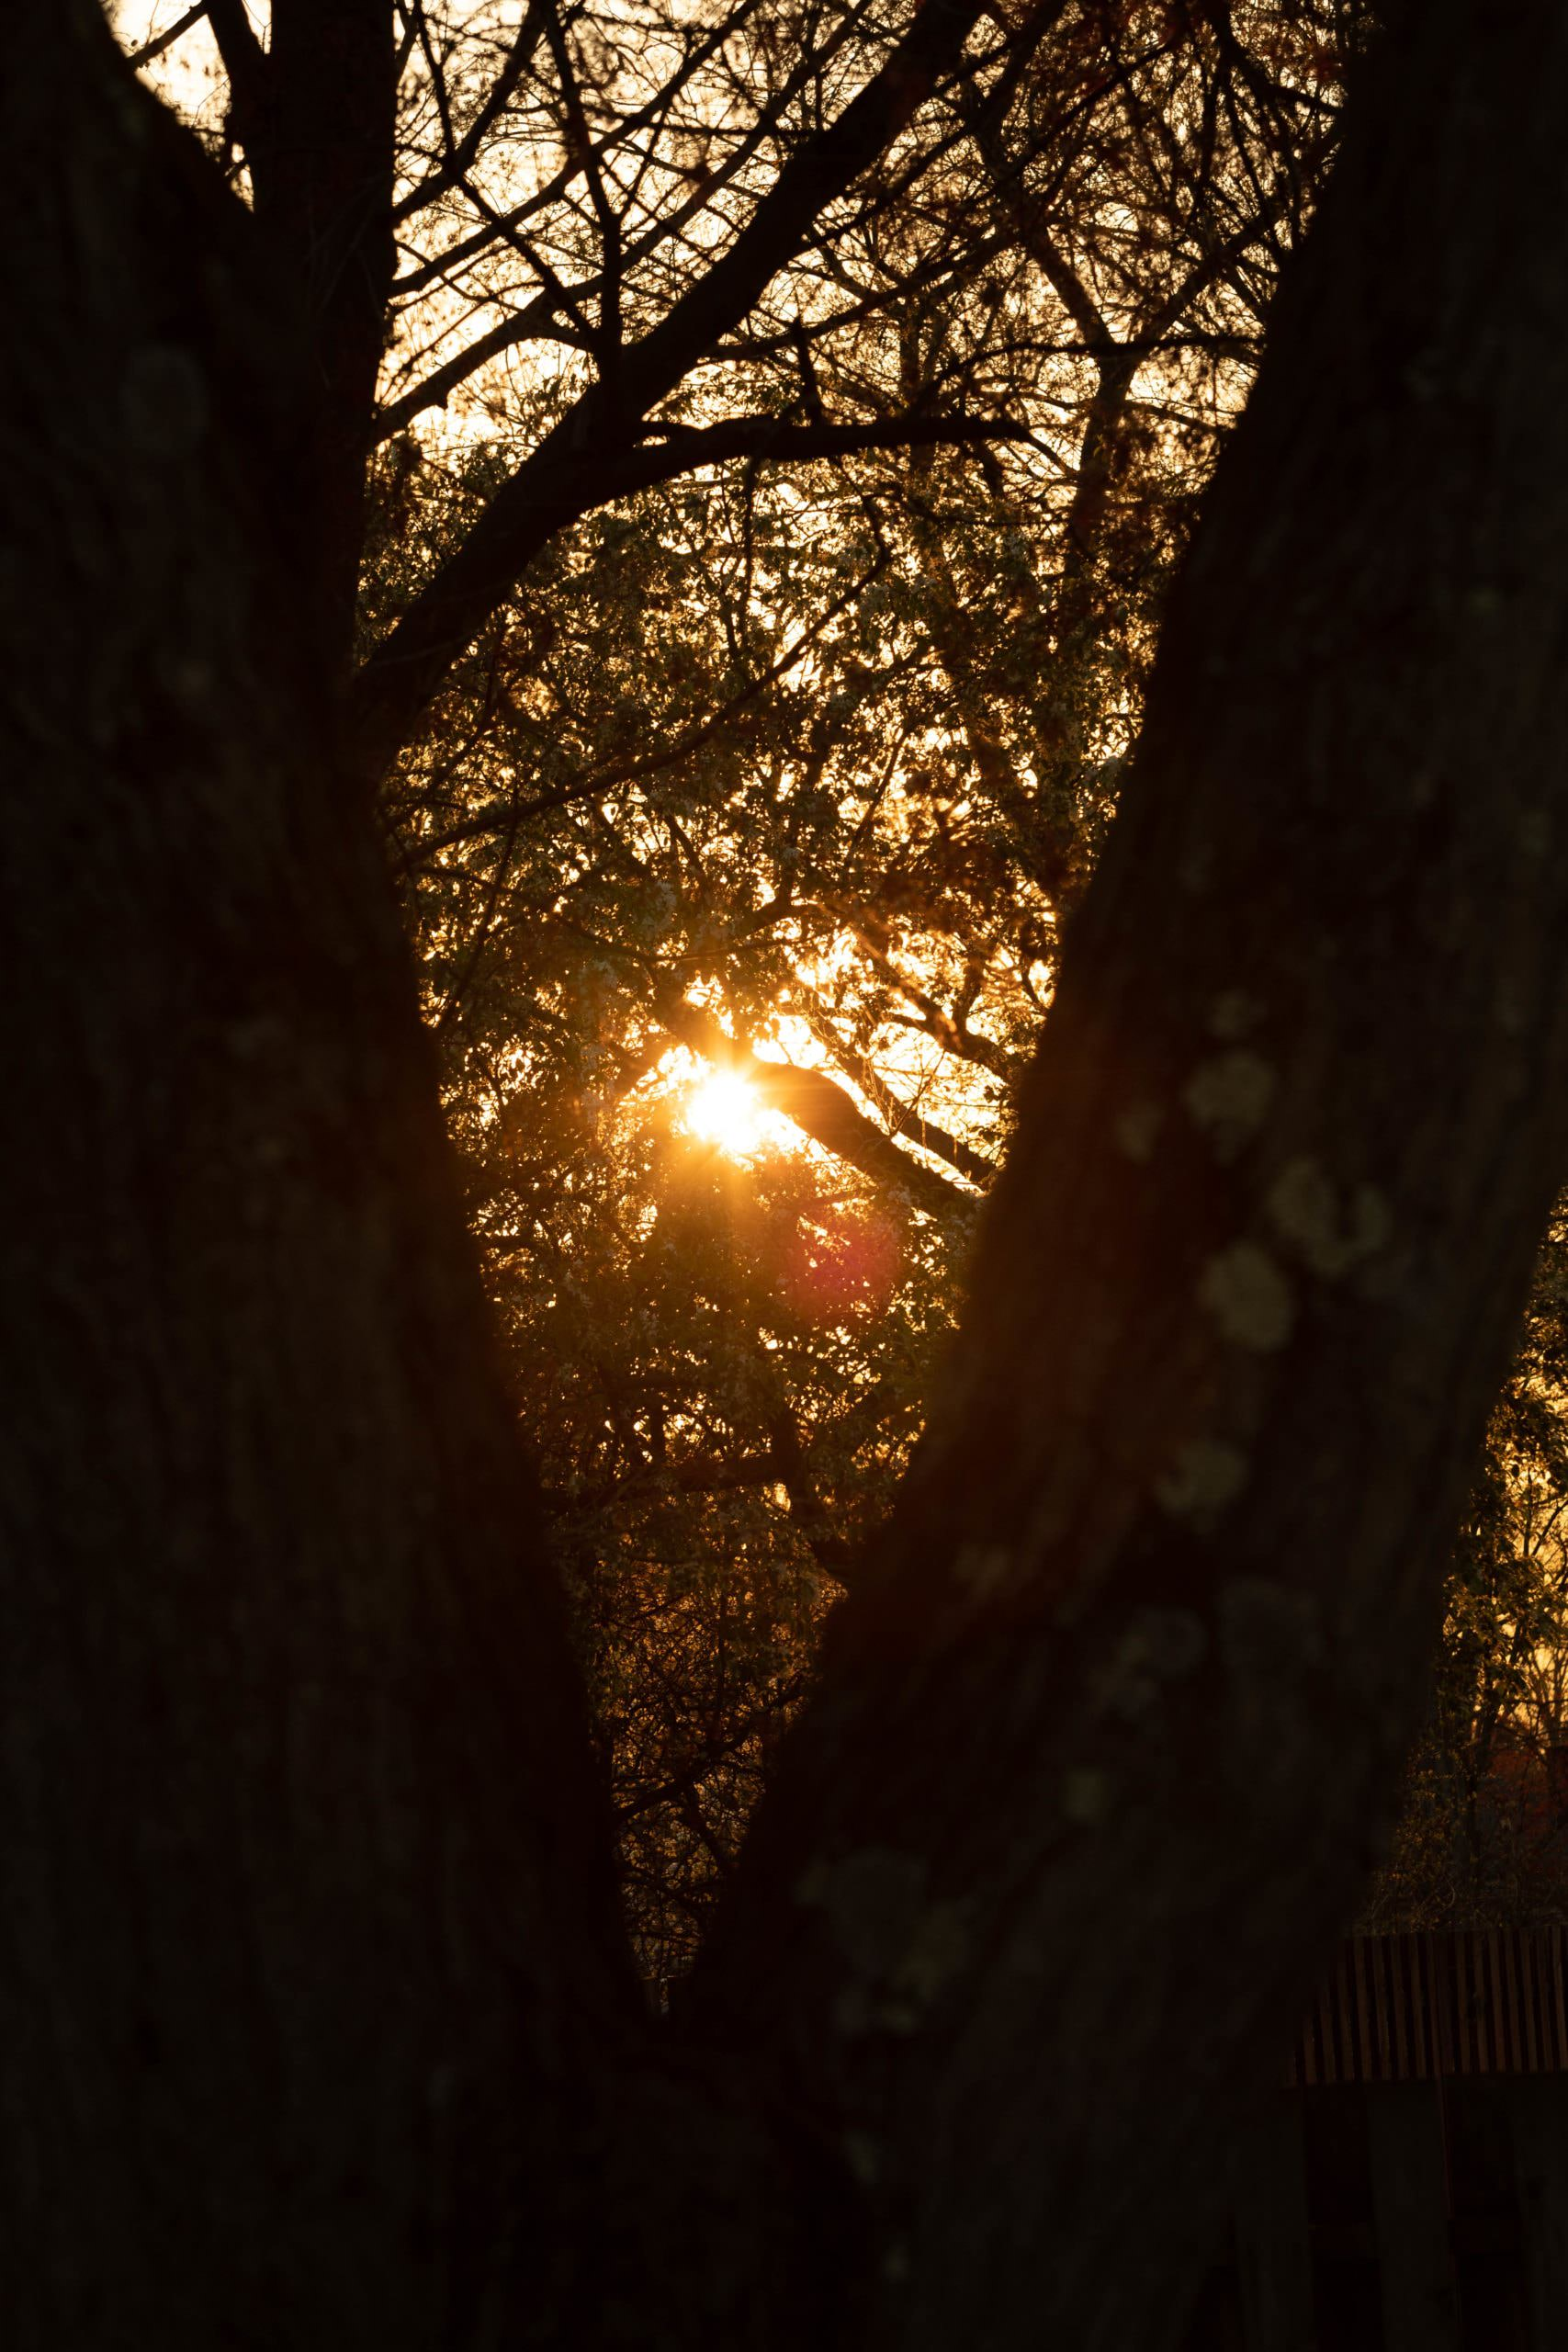 Sunset between trees in Cherry Hill NJ.